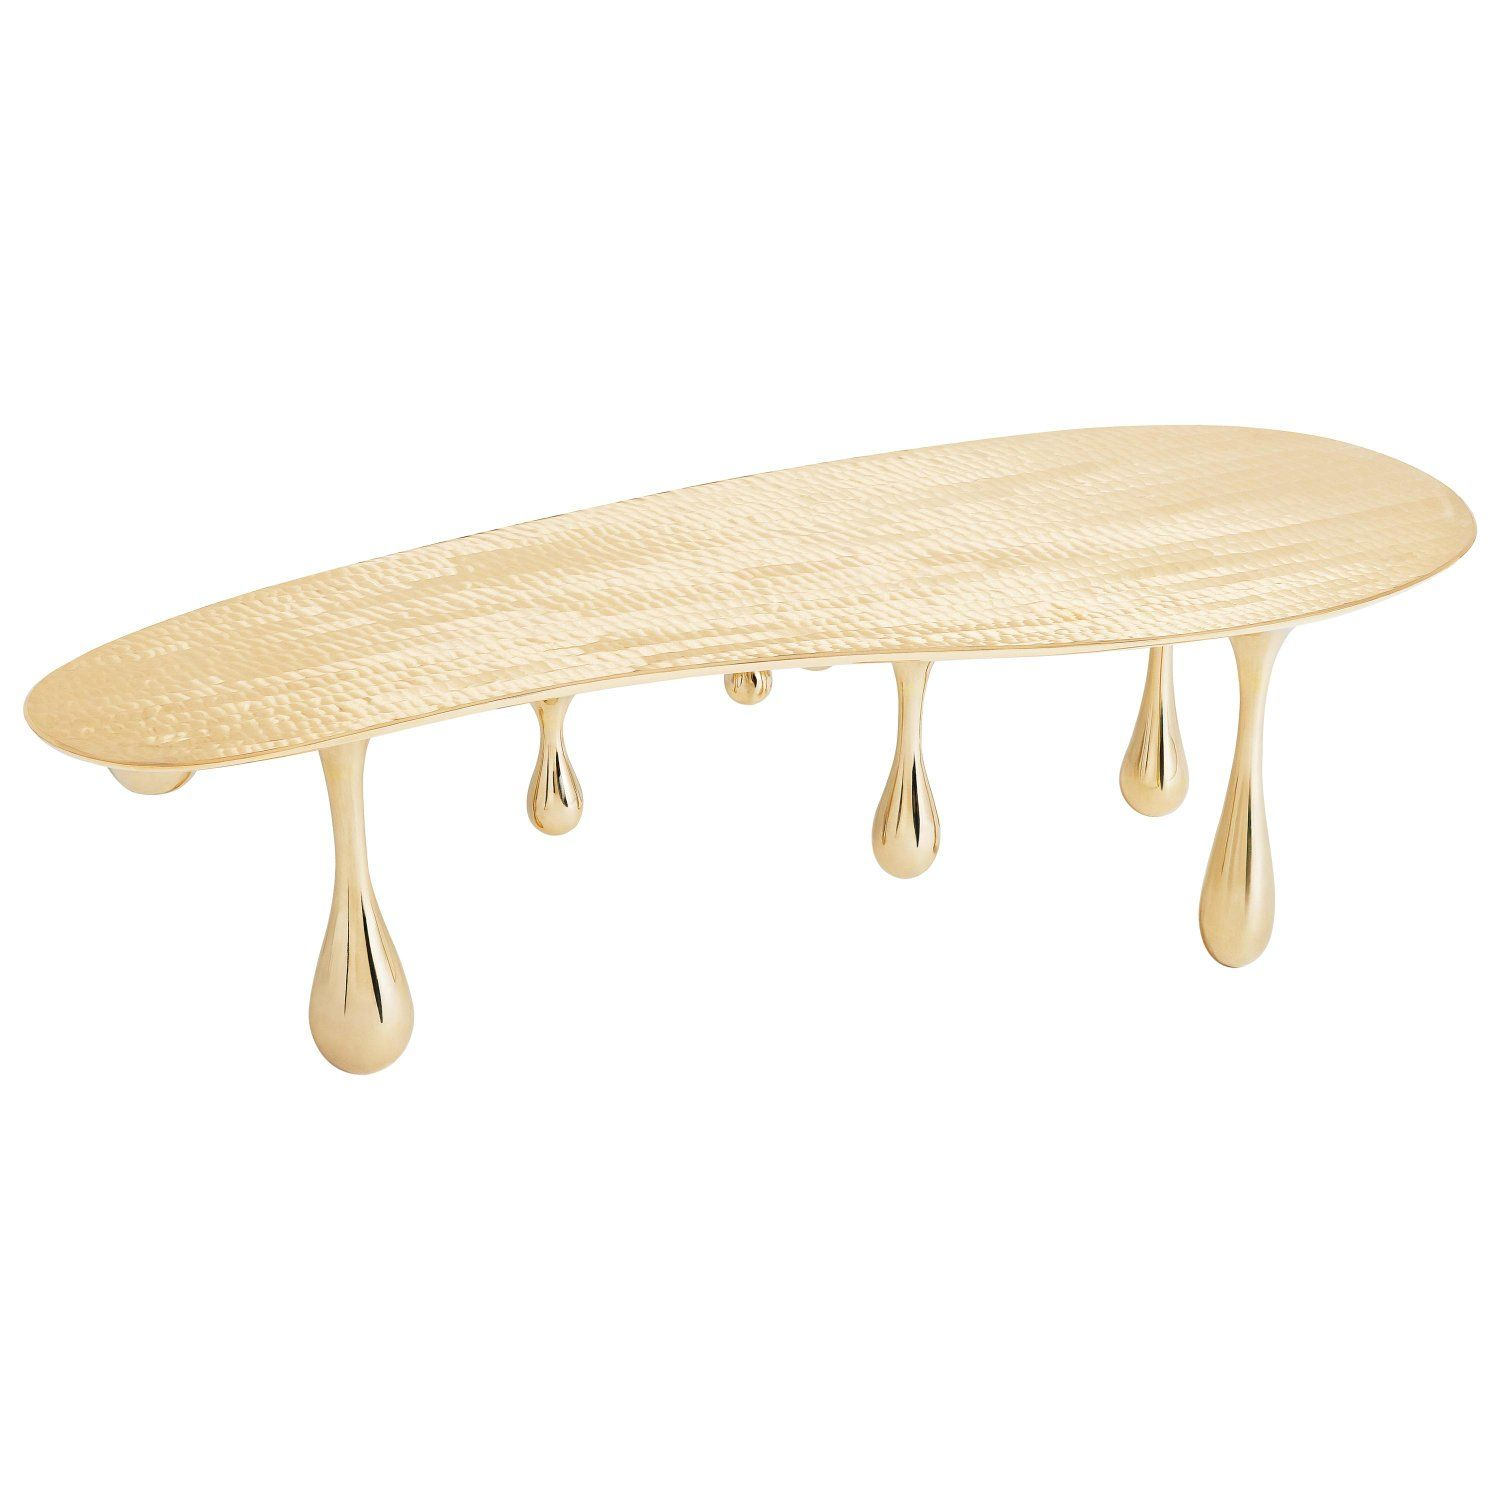 Melting Coffee Table Cocktail Table Bean Shape Polished Brass By Zhipeng Tan Vintage Coffee Cocktail Tables Polished Brass [ 1500 x 1500 Pixel ]